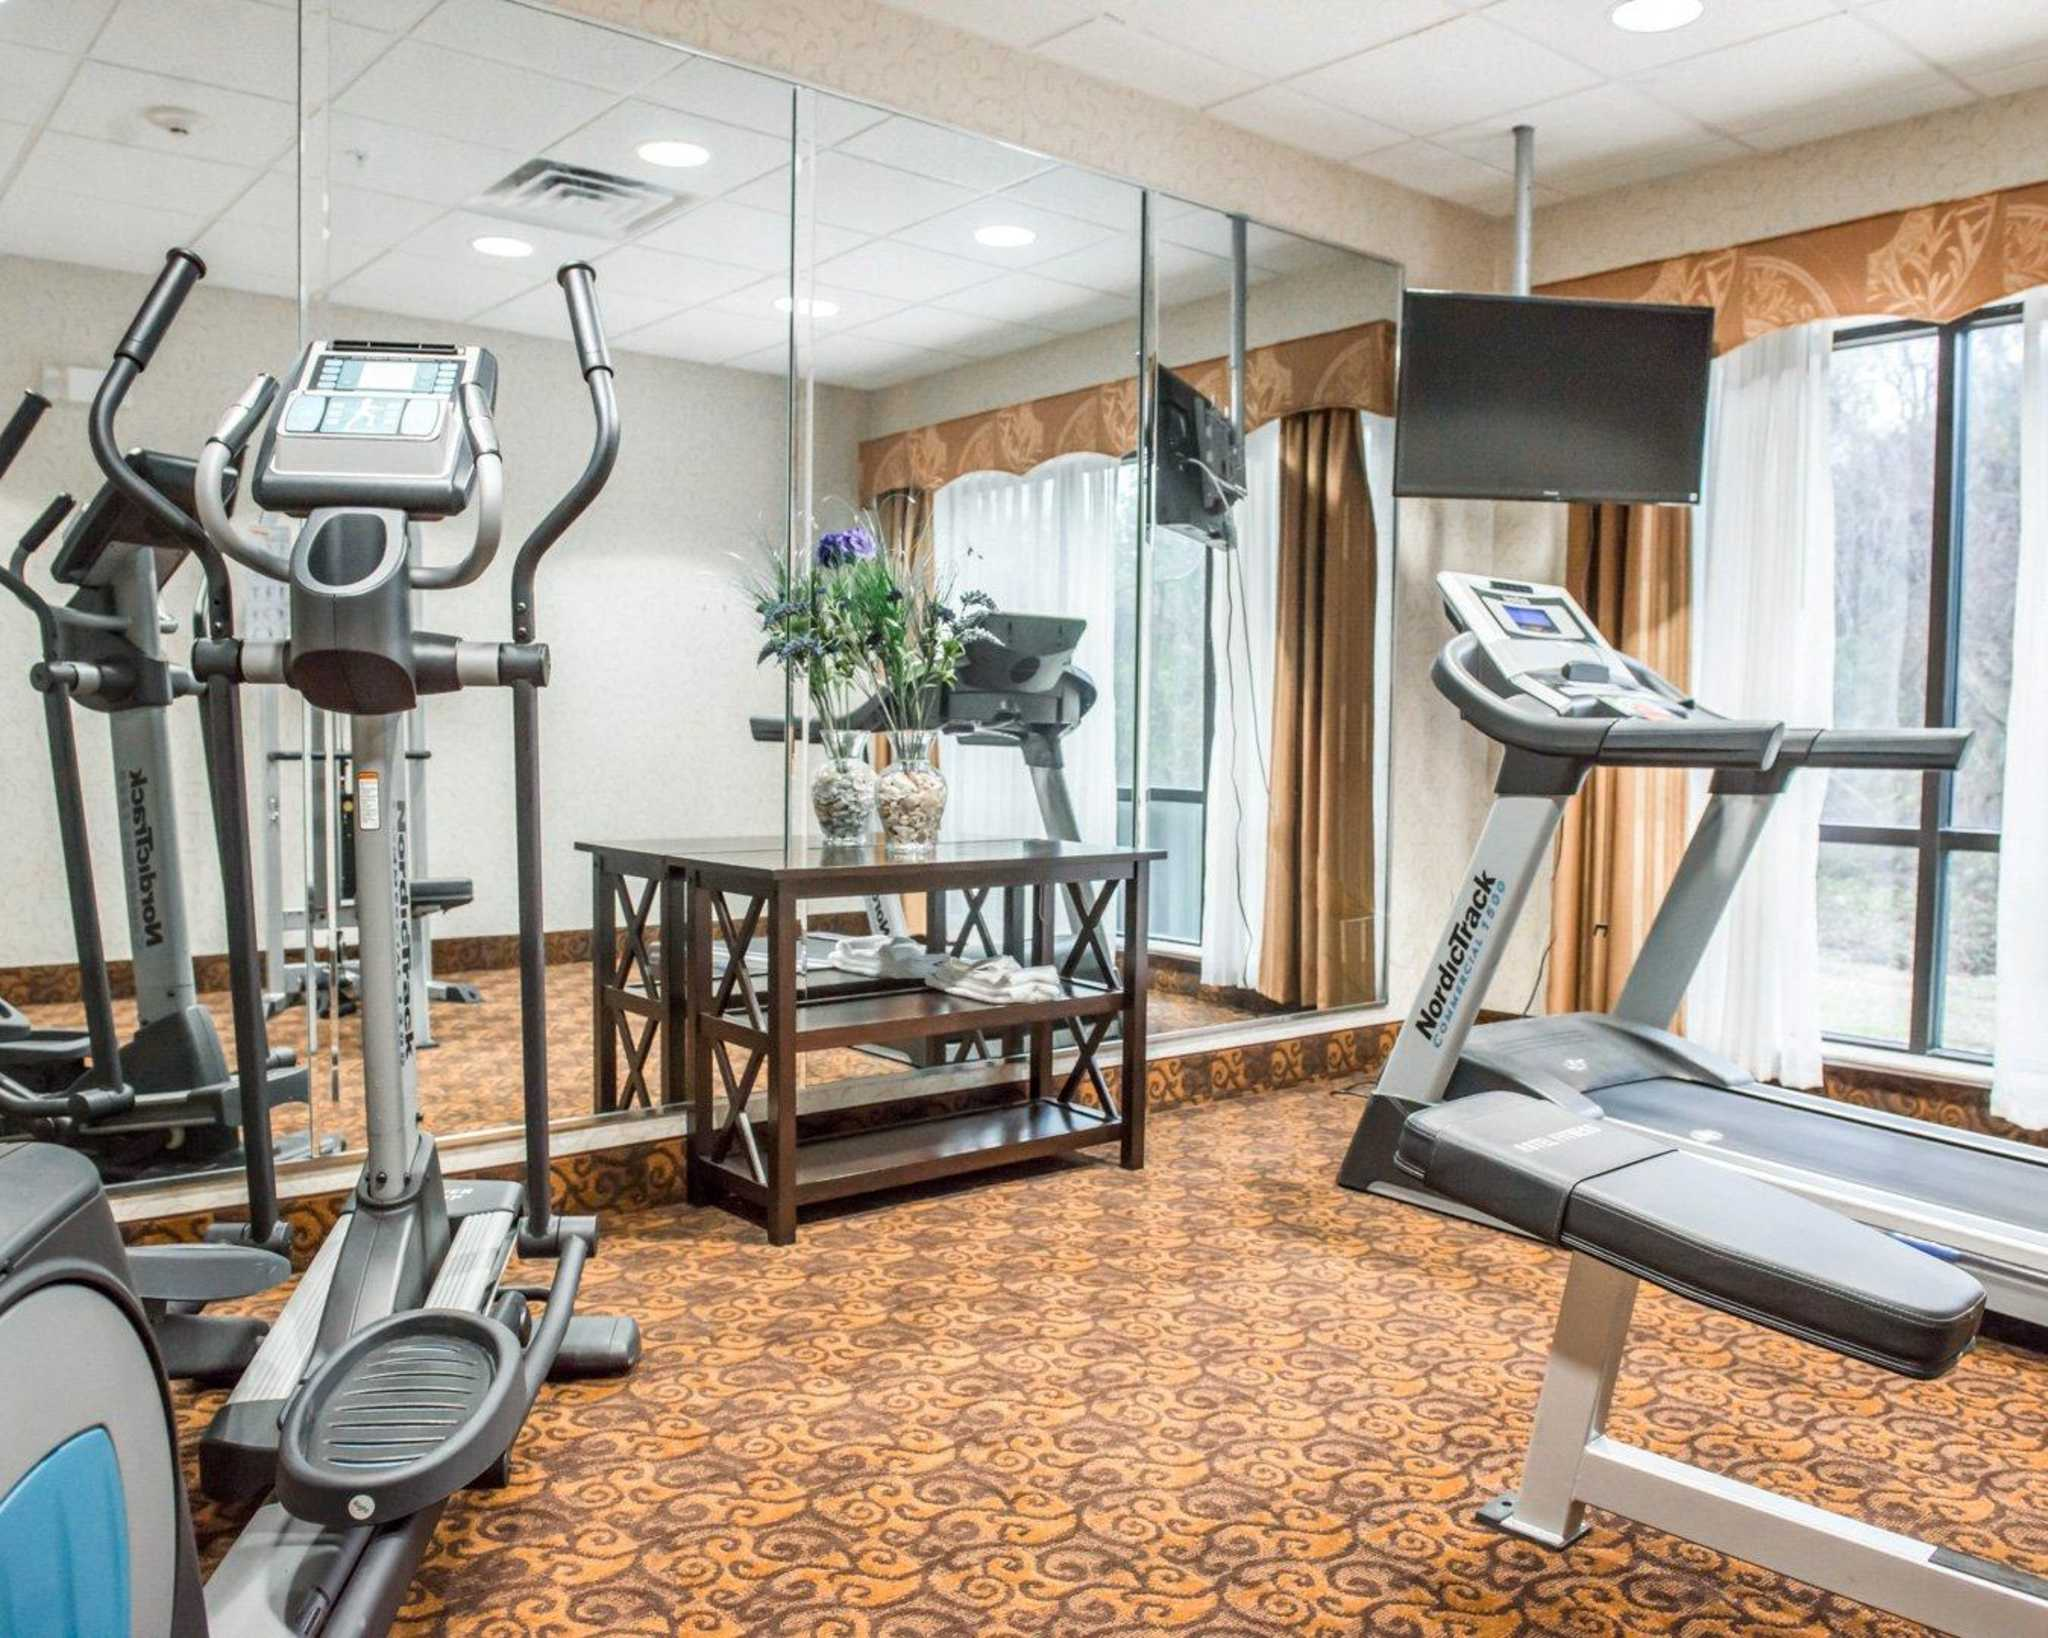 Comfort Inn & Suites Midway - Tallahassee West image 31